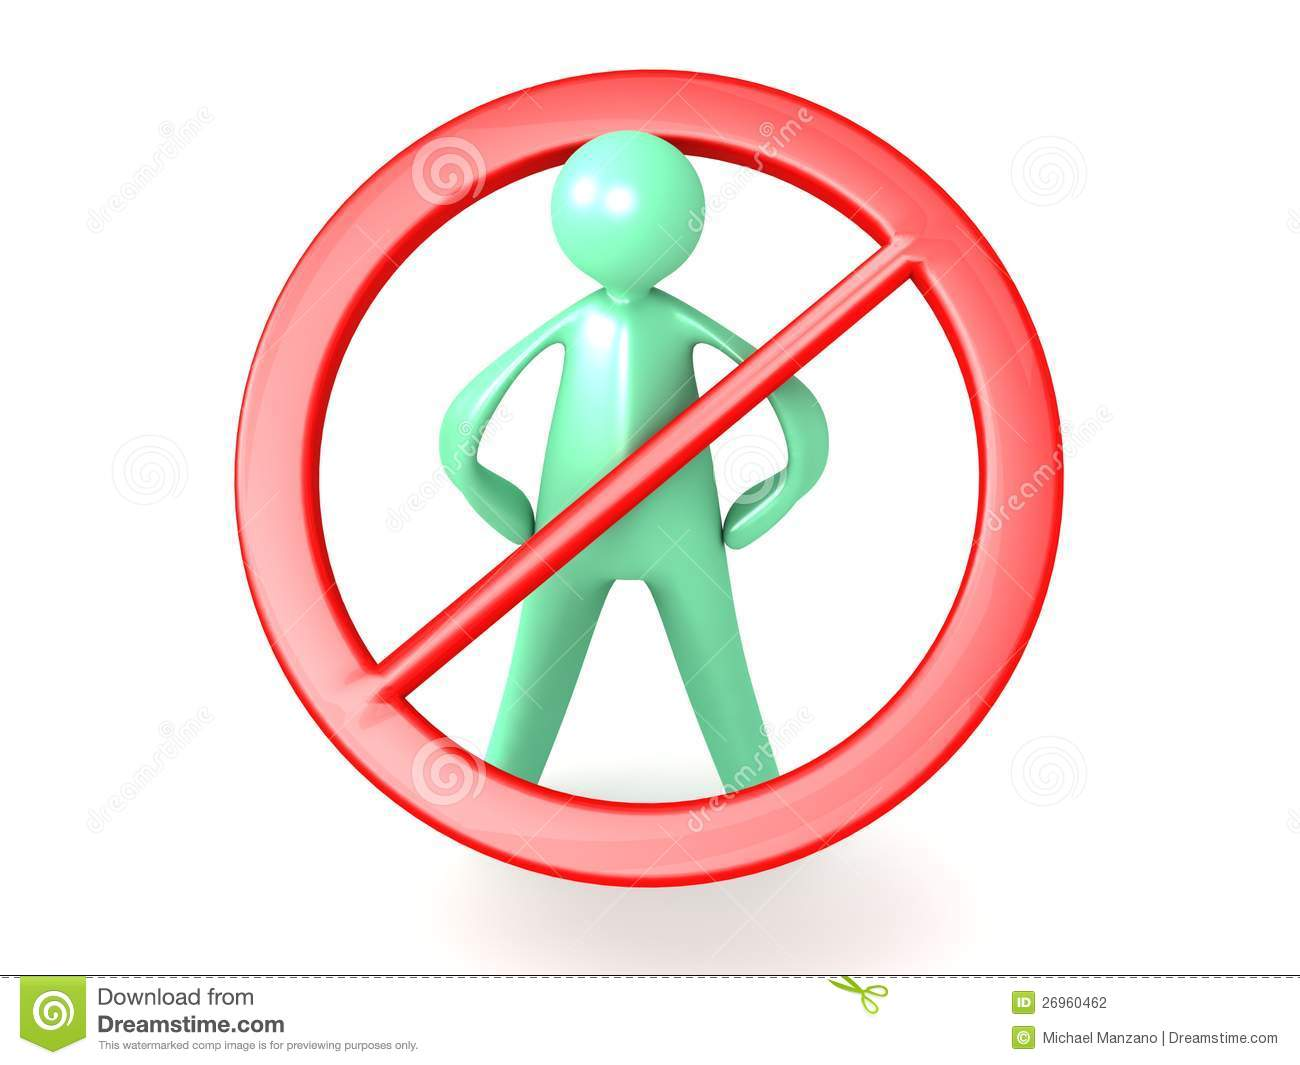 An illustration of a red no humans sign allowed on a white background.